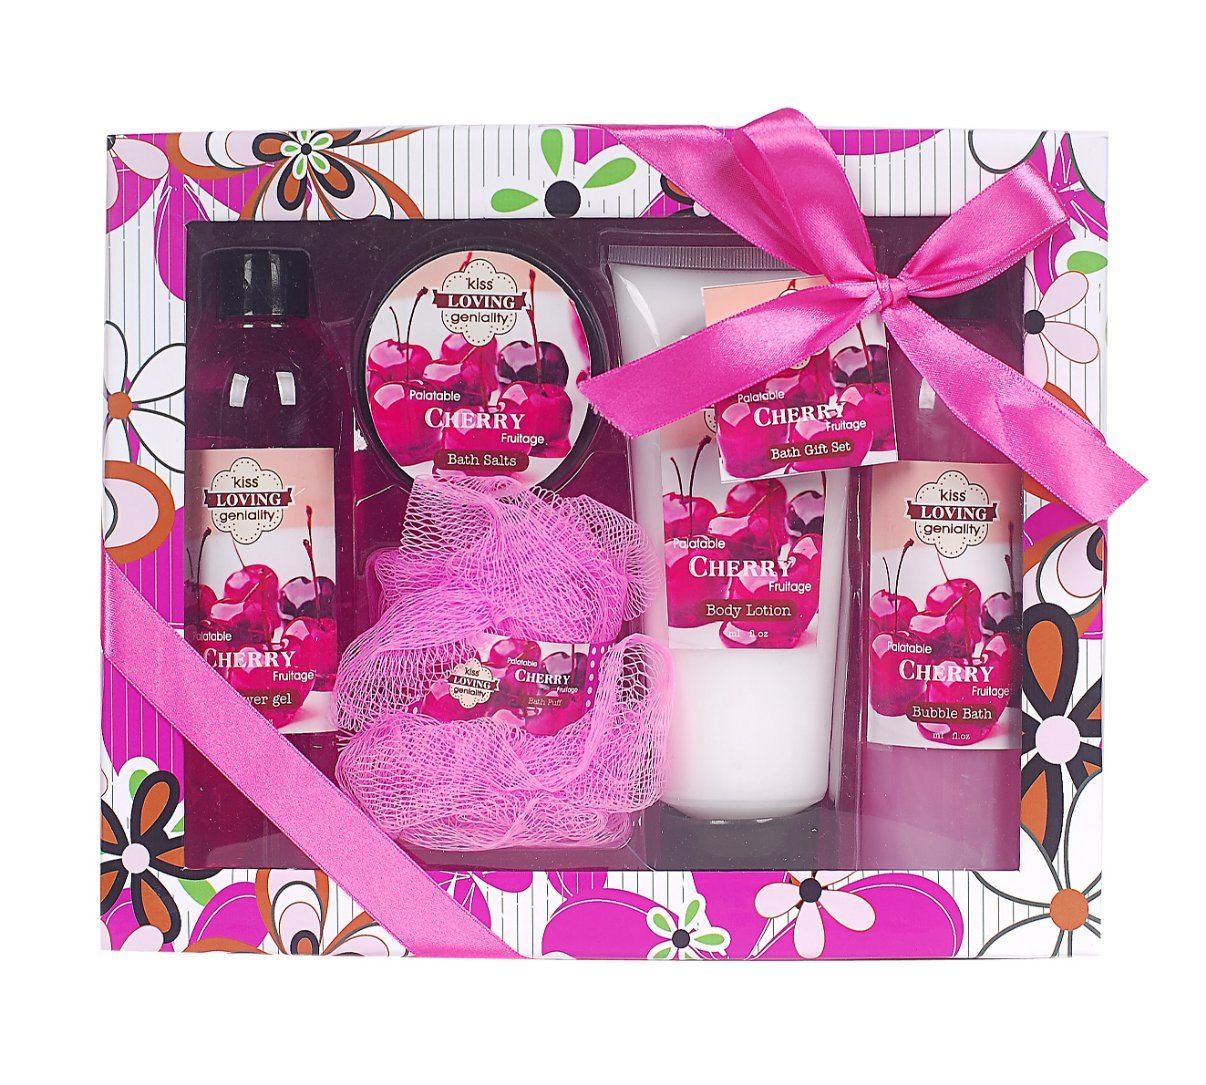 China Oem Manufacture Cherry Body Wash Care Spa Gift Set In Paper Gift Box China Bathroom Bath Sets And Bath And Body Gift Set Price